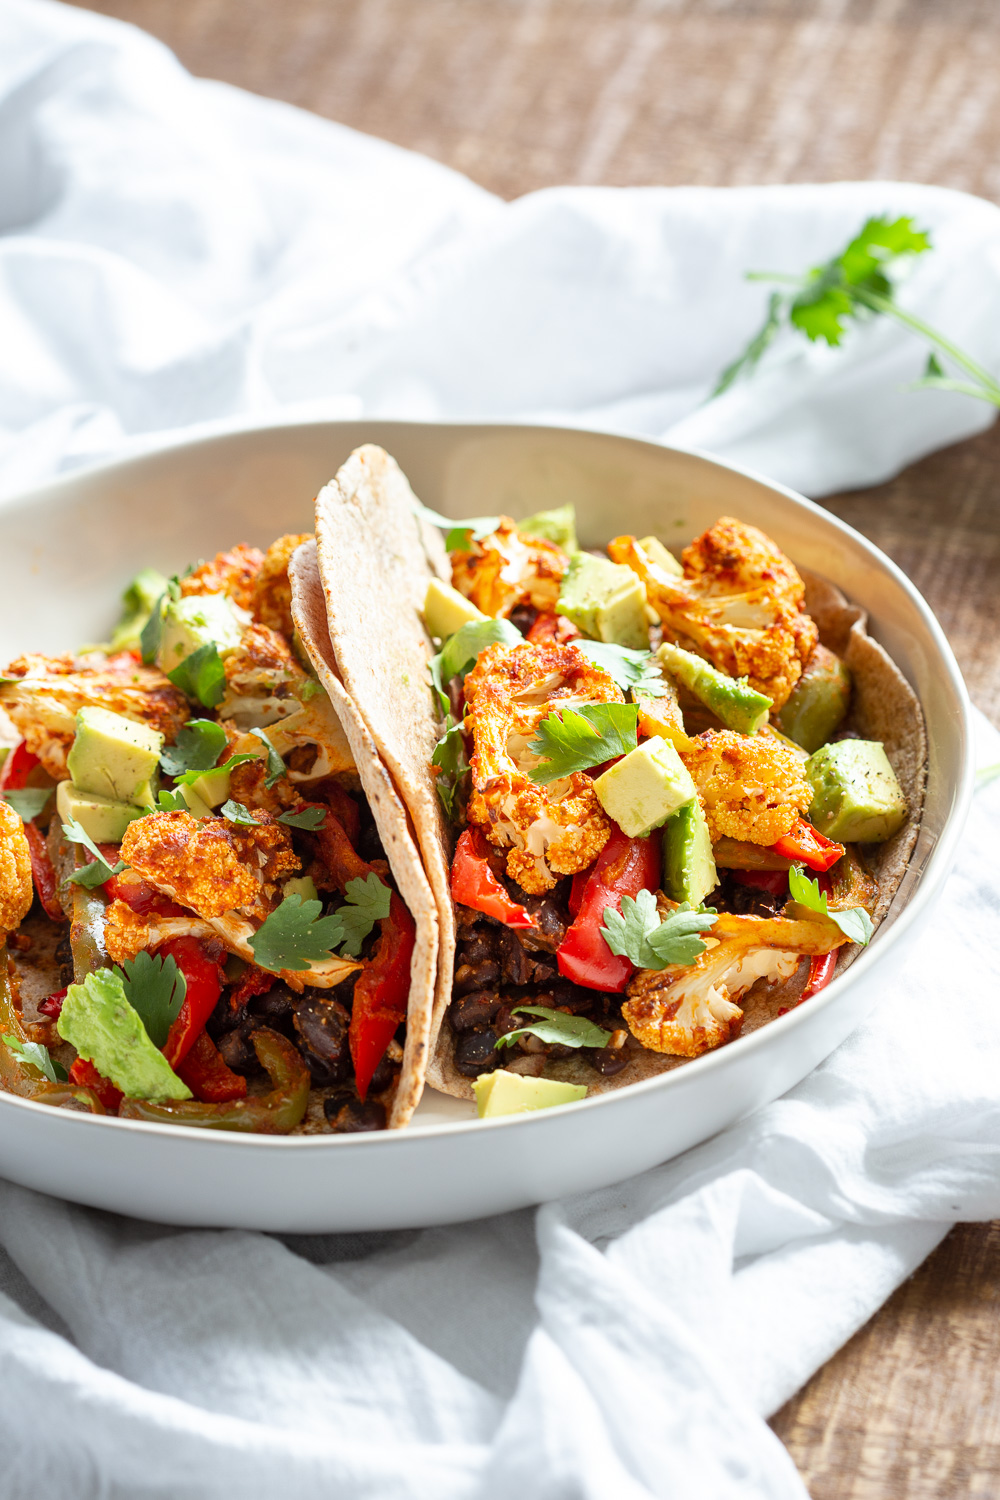 Sheet Pan Fajitas. Cauliflower, Peppers, Beans tossed in Chipotle Fajita Sauce and baked. Serve in tacos or Bowl #Vegan #Glutenfree #Soyfree Nutfree #Recipe #VeganRicha